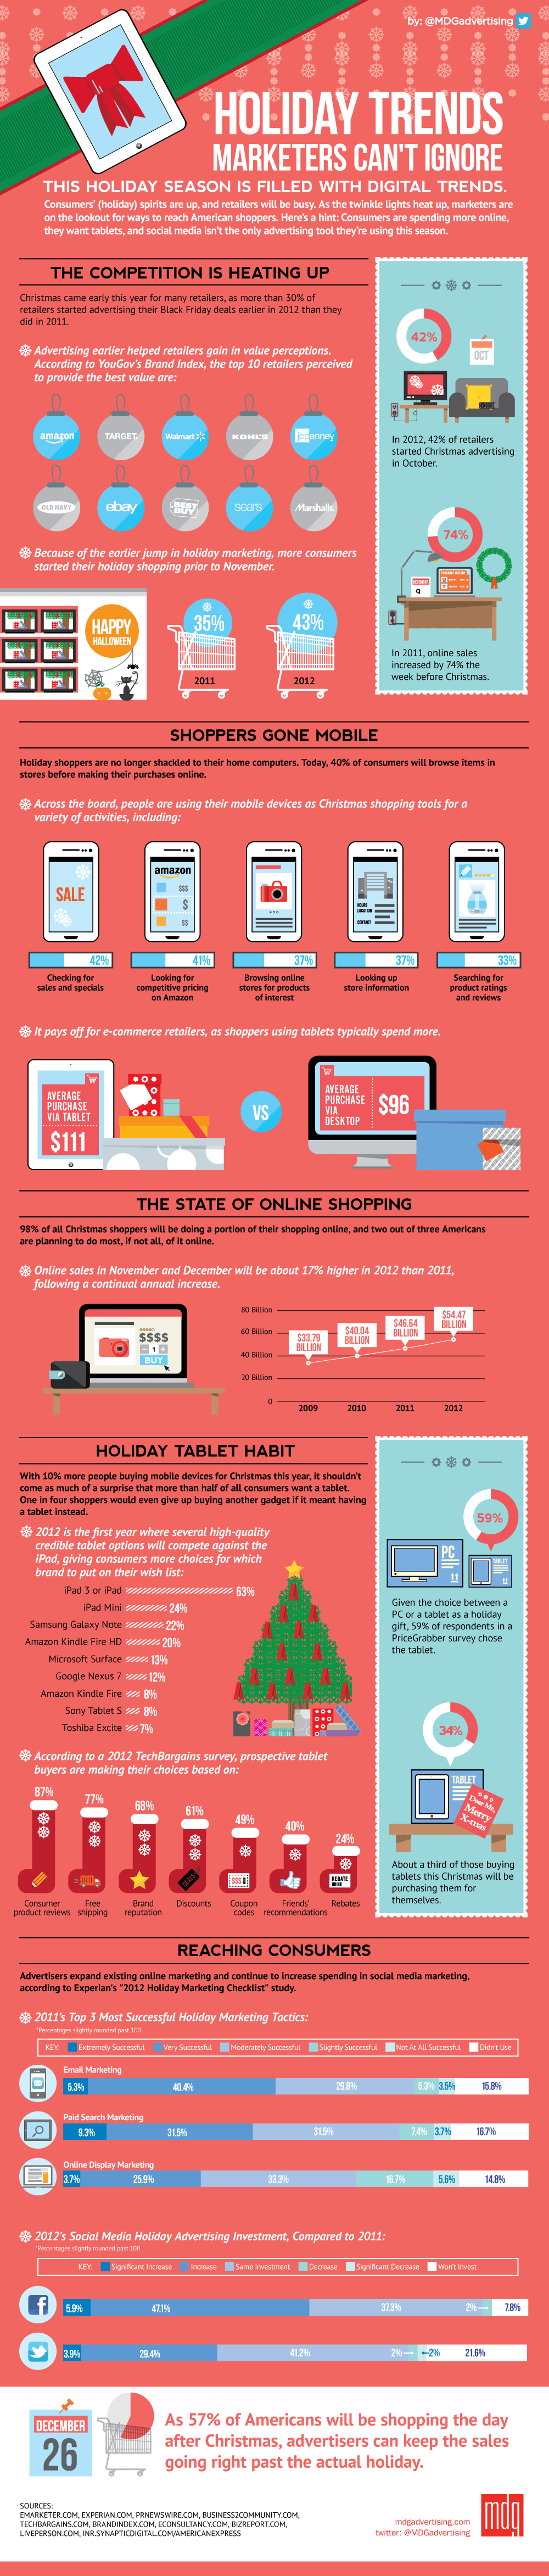 Holiday-Trends-Marketers-Cant-Ignore_MDG-Infographic_1000[1]